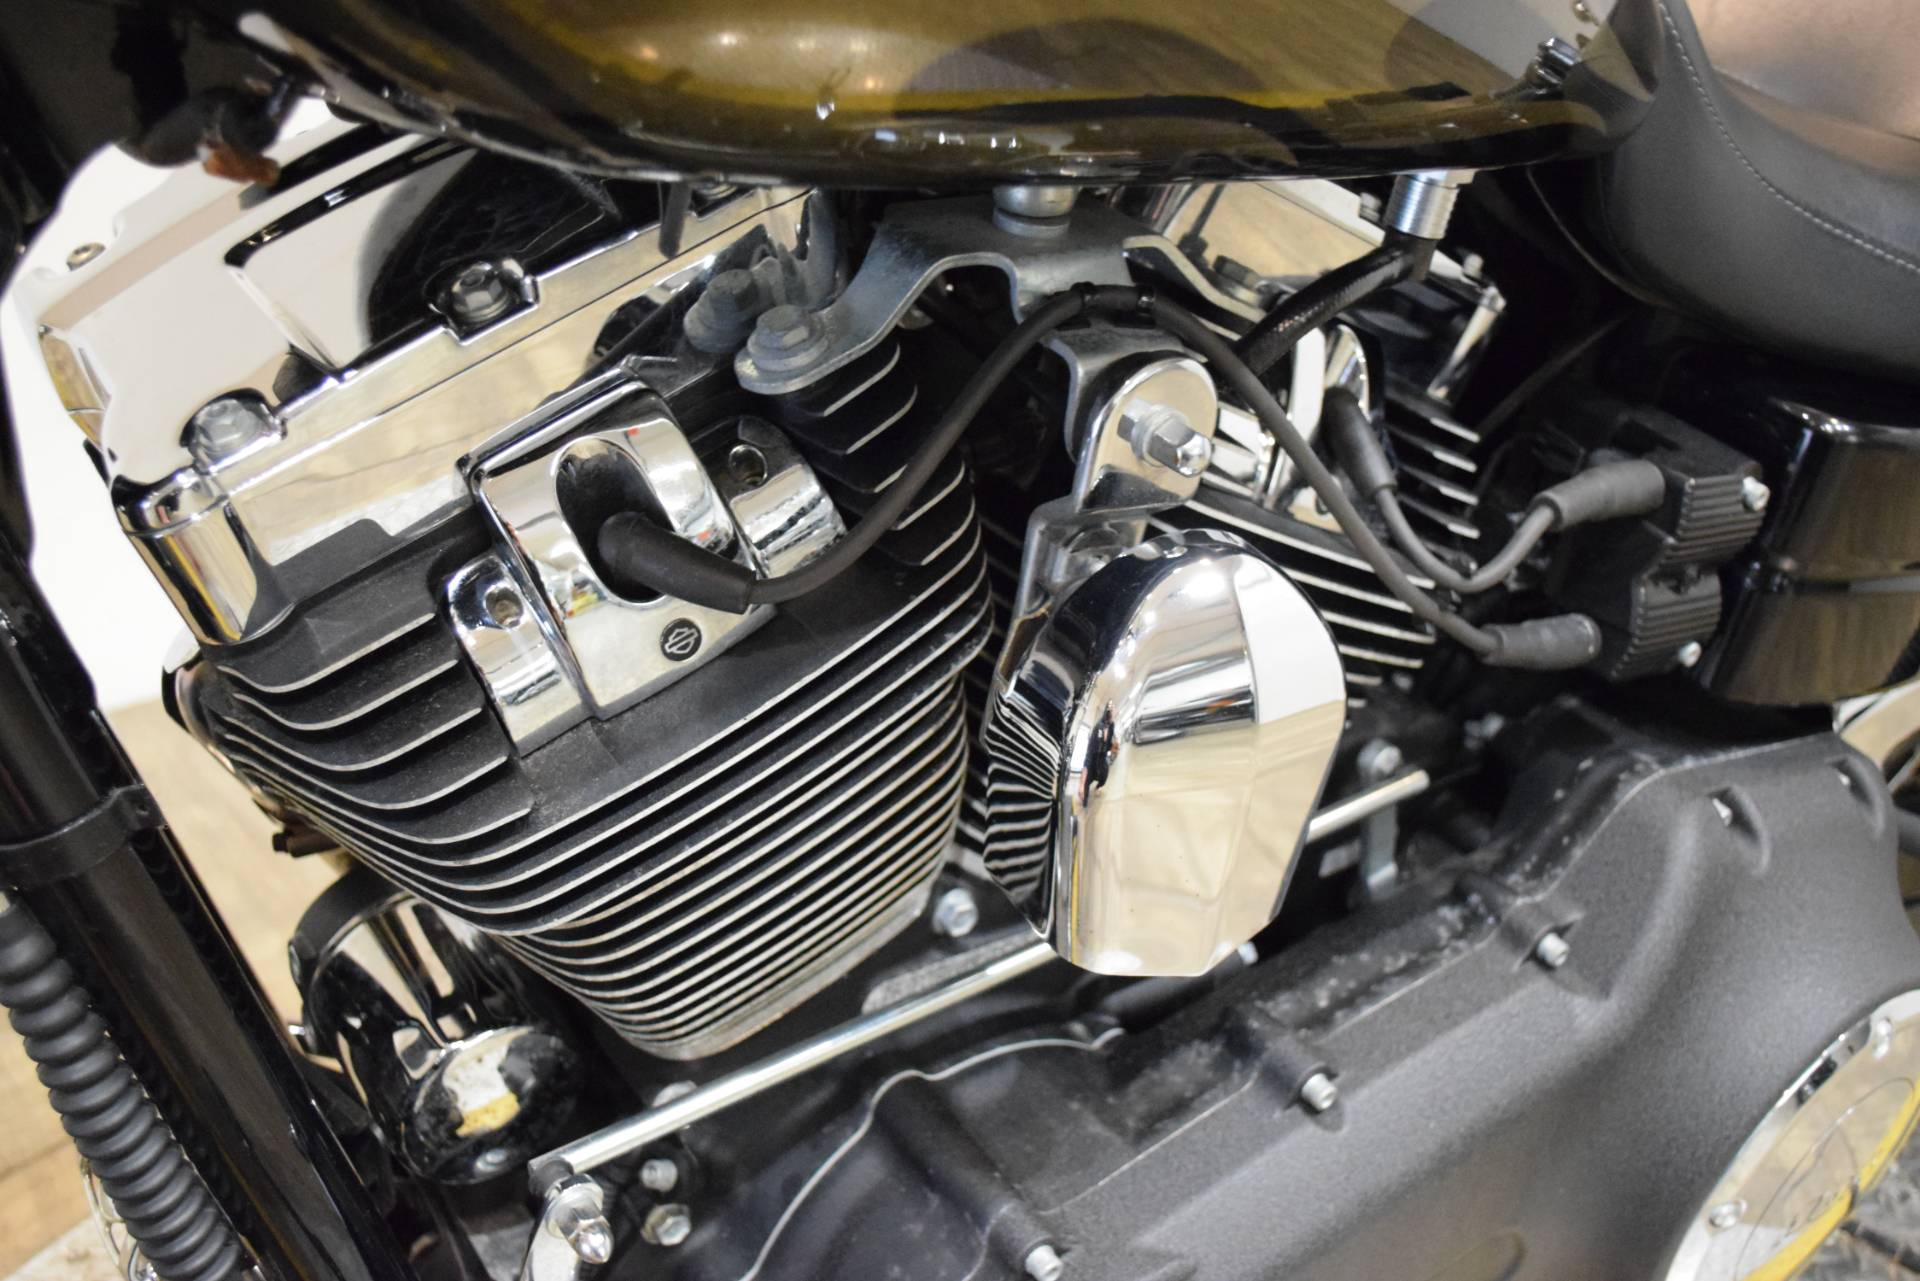 2016 Harley-Davidson Wide Glide® in Wauconda, Illinois - Photo 19